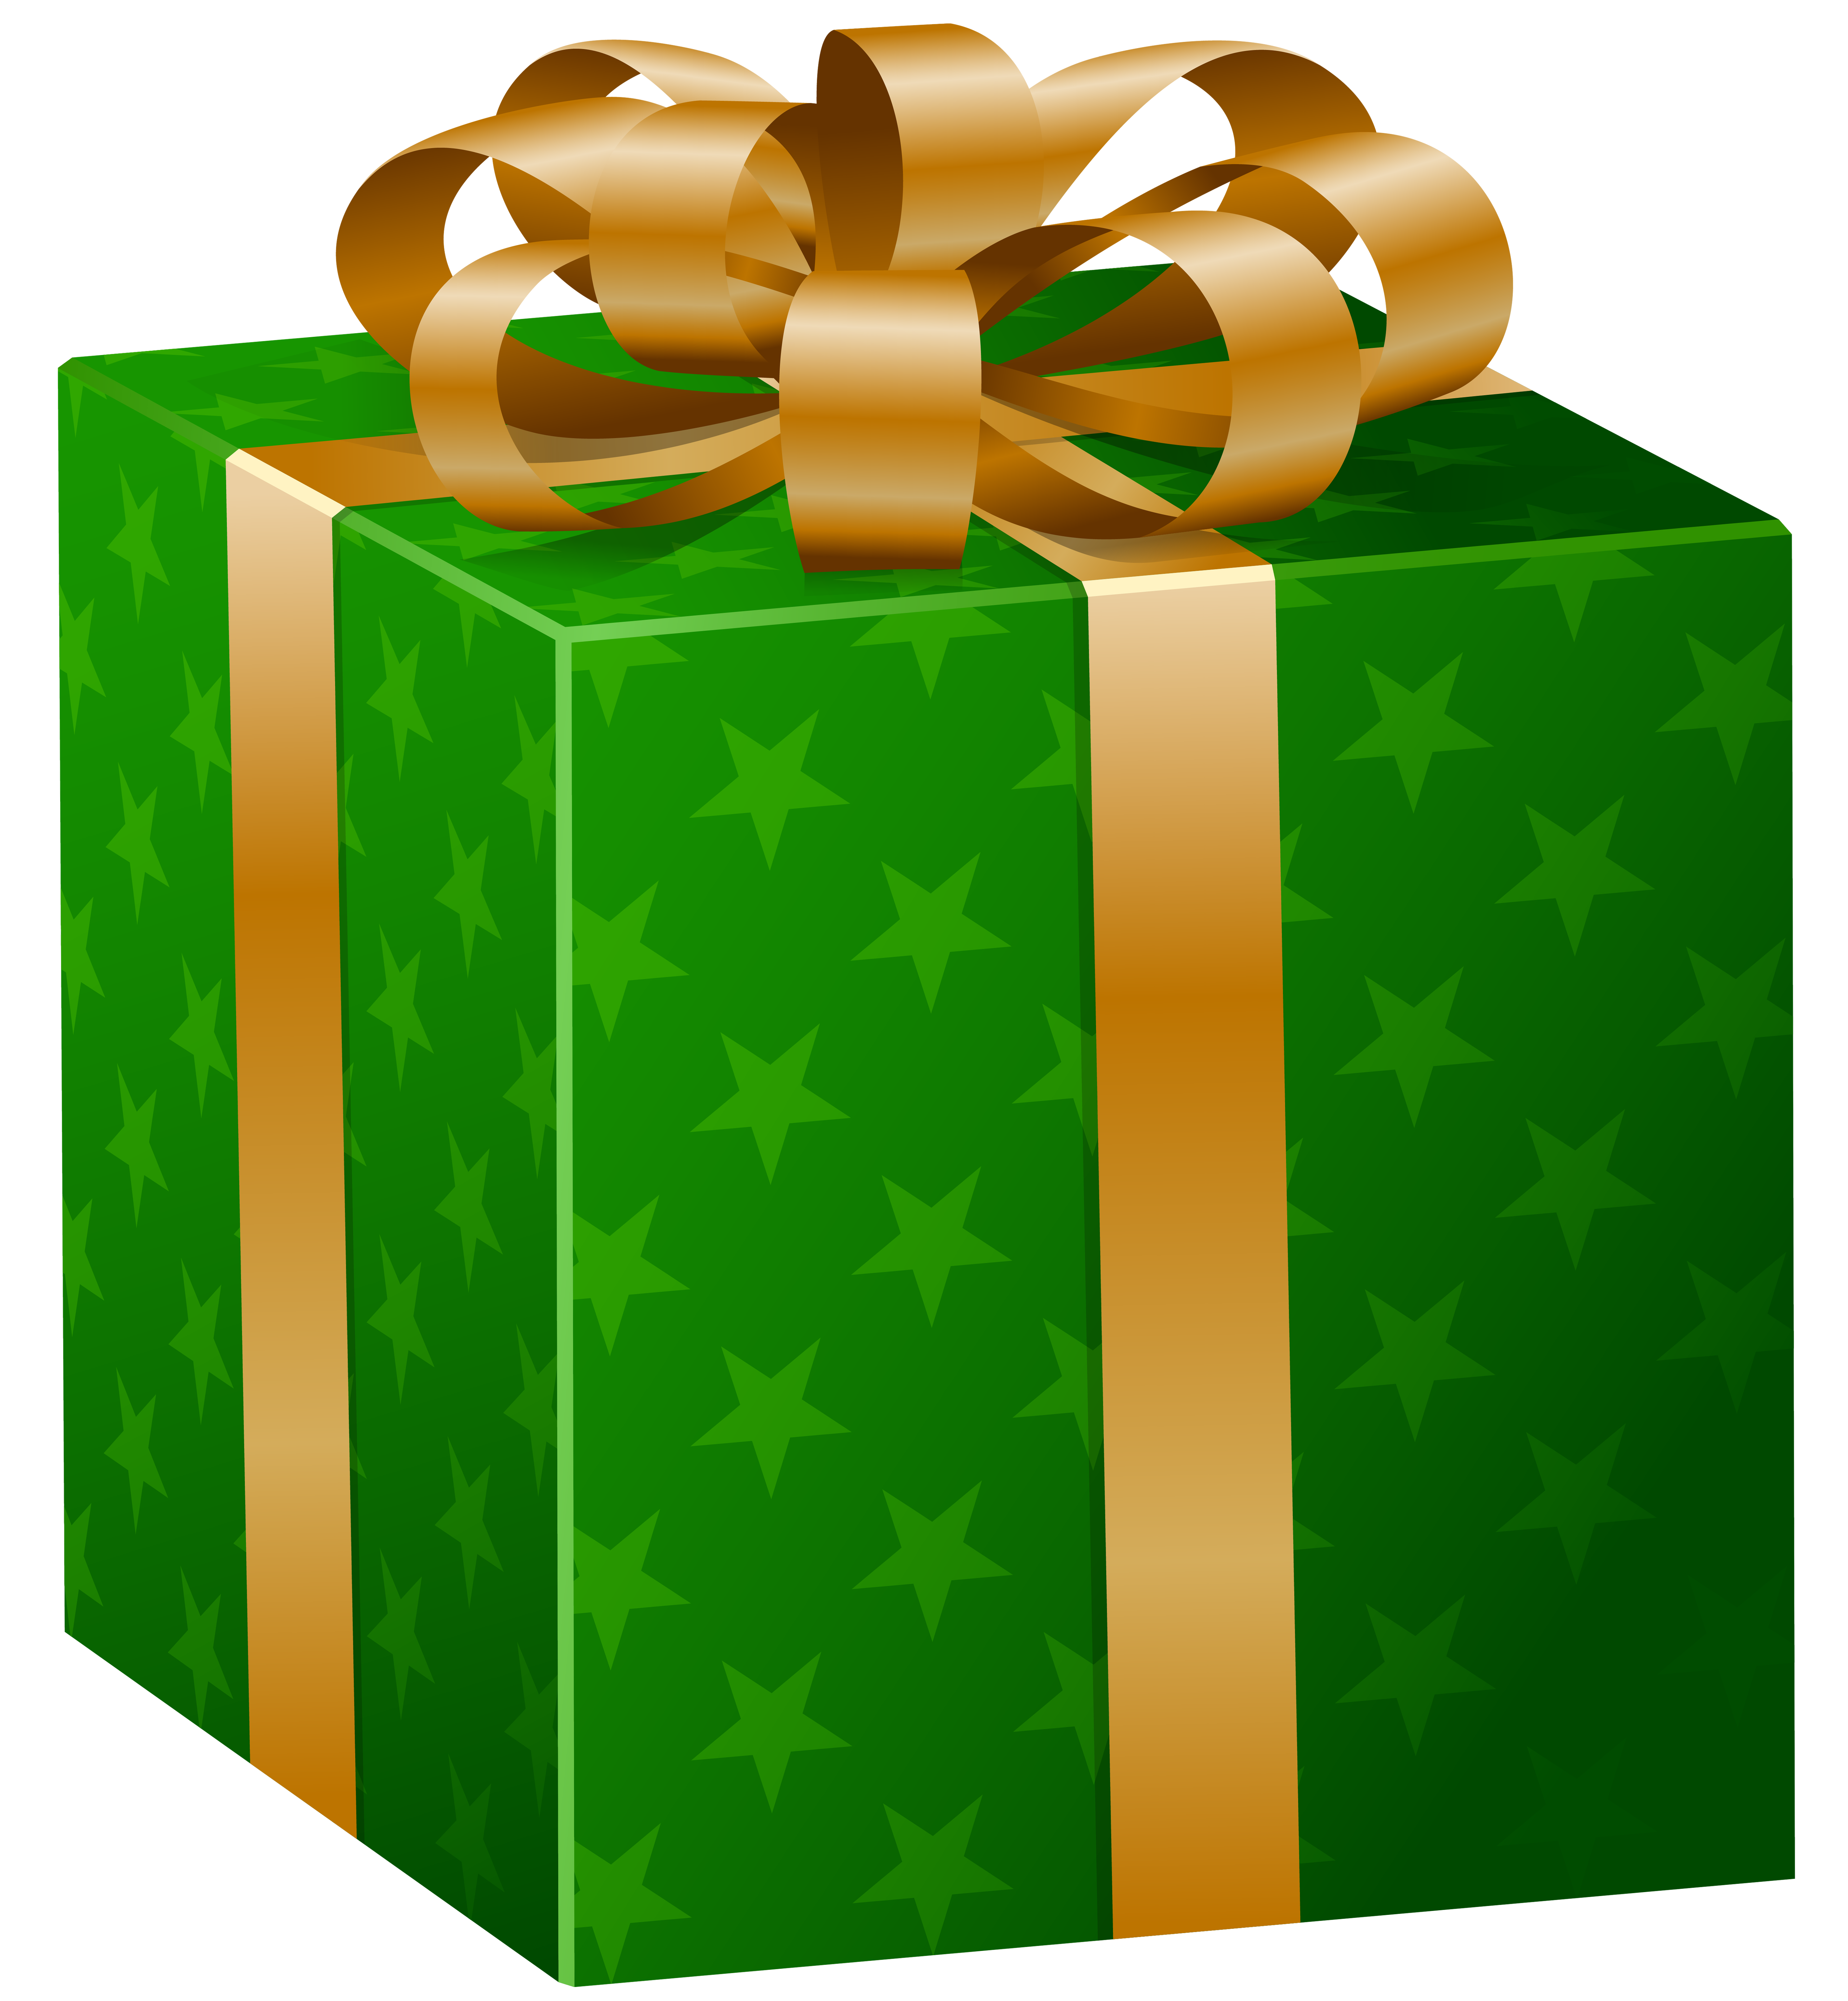 Green box png image. Gift clipart clip art